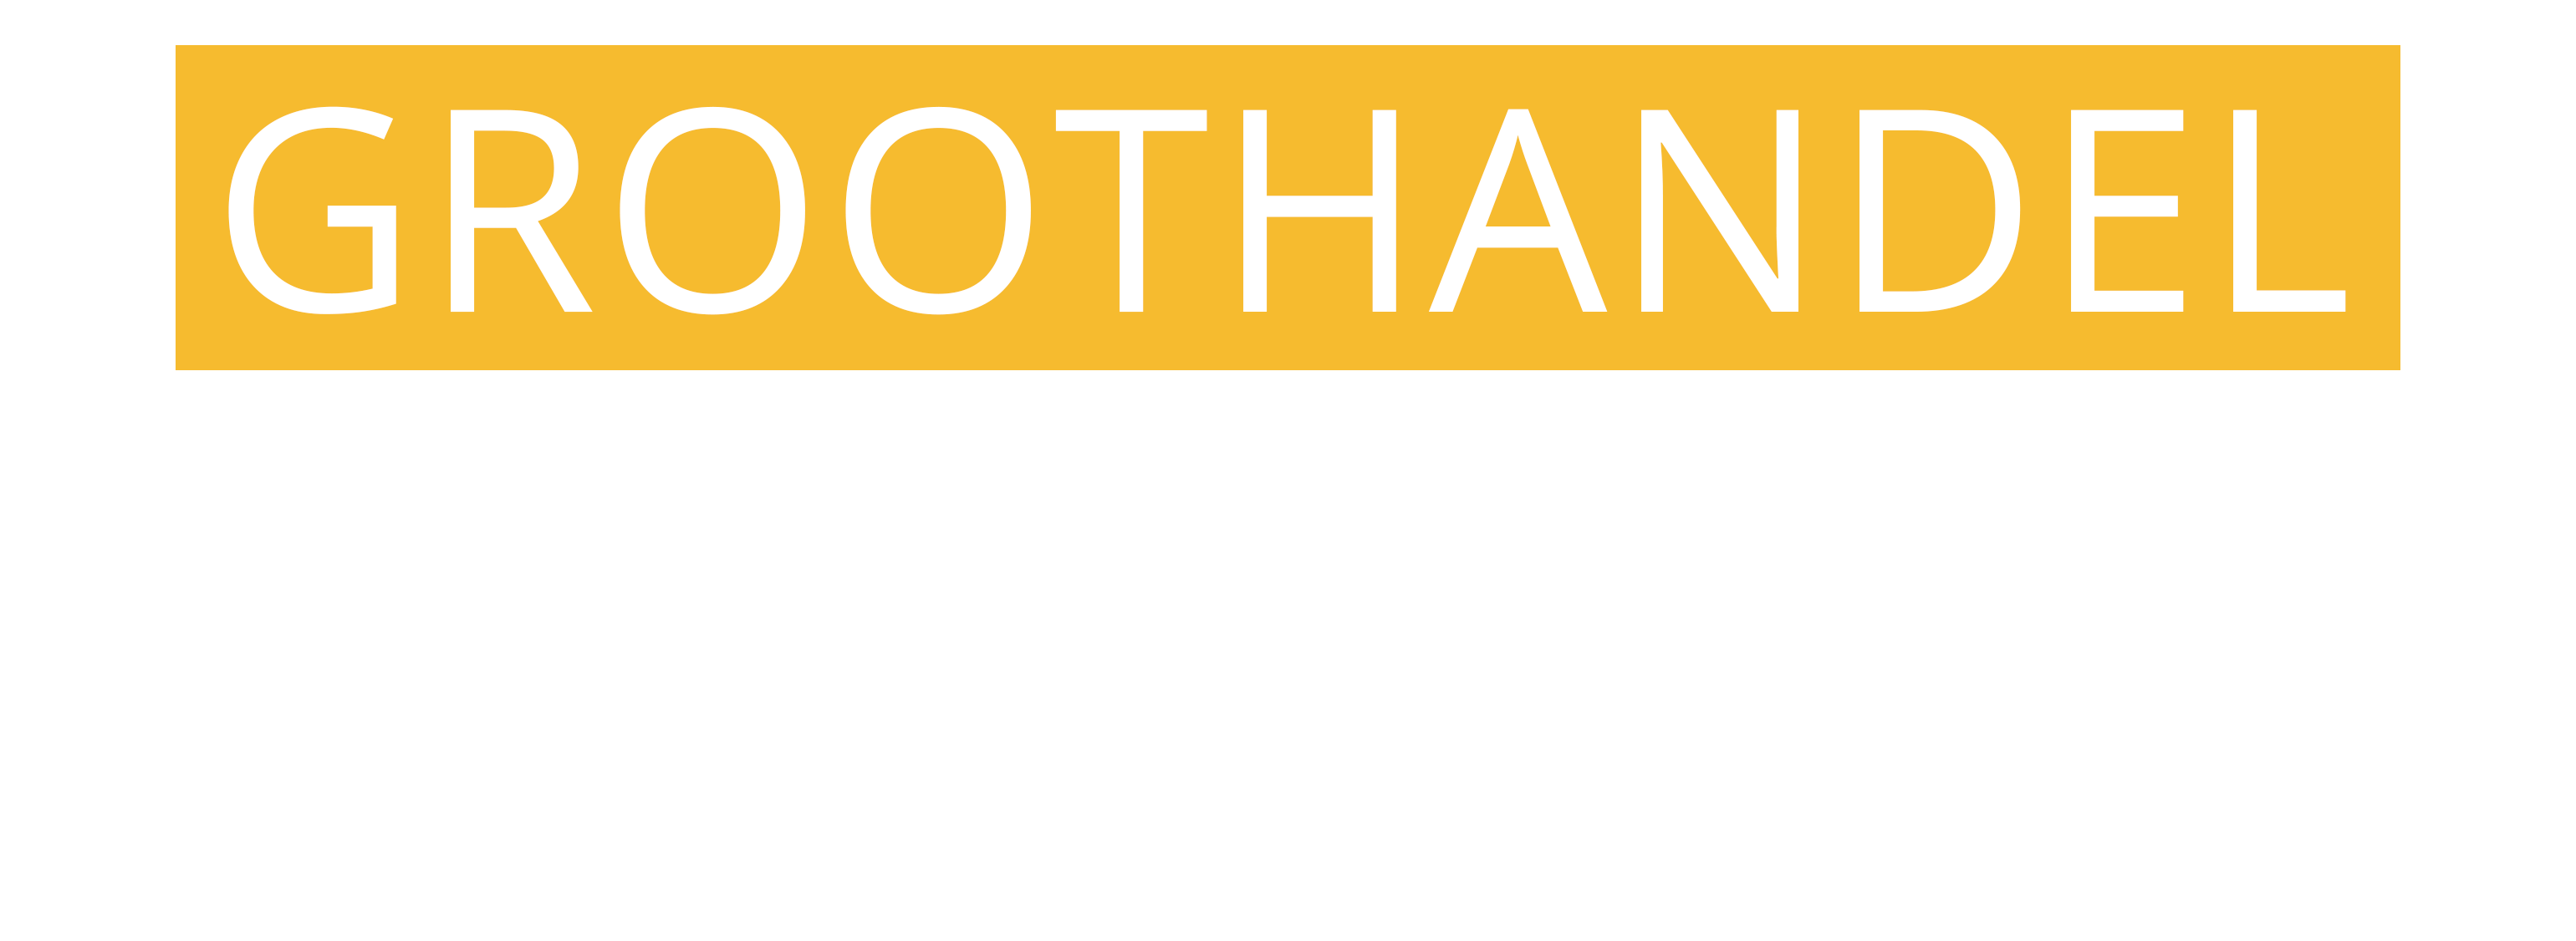 Groothandel E-commerce Event